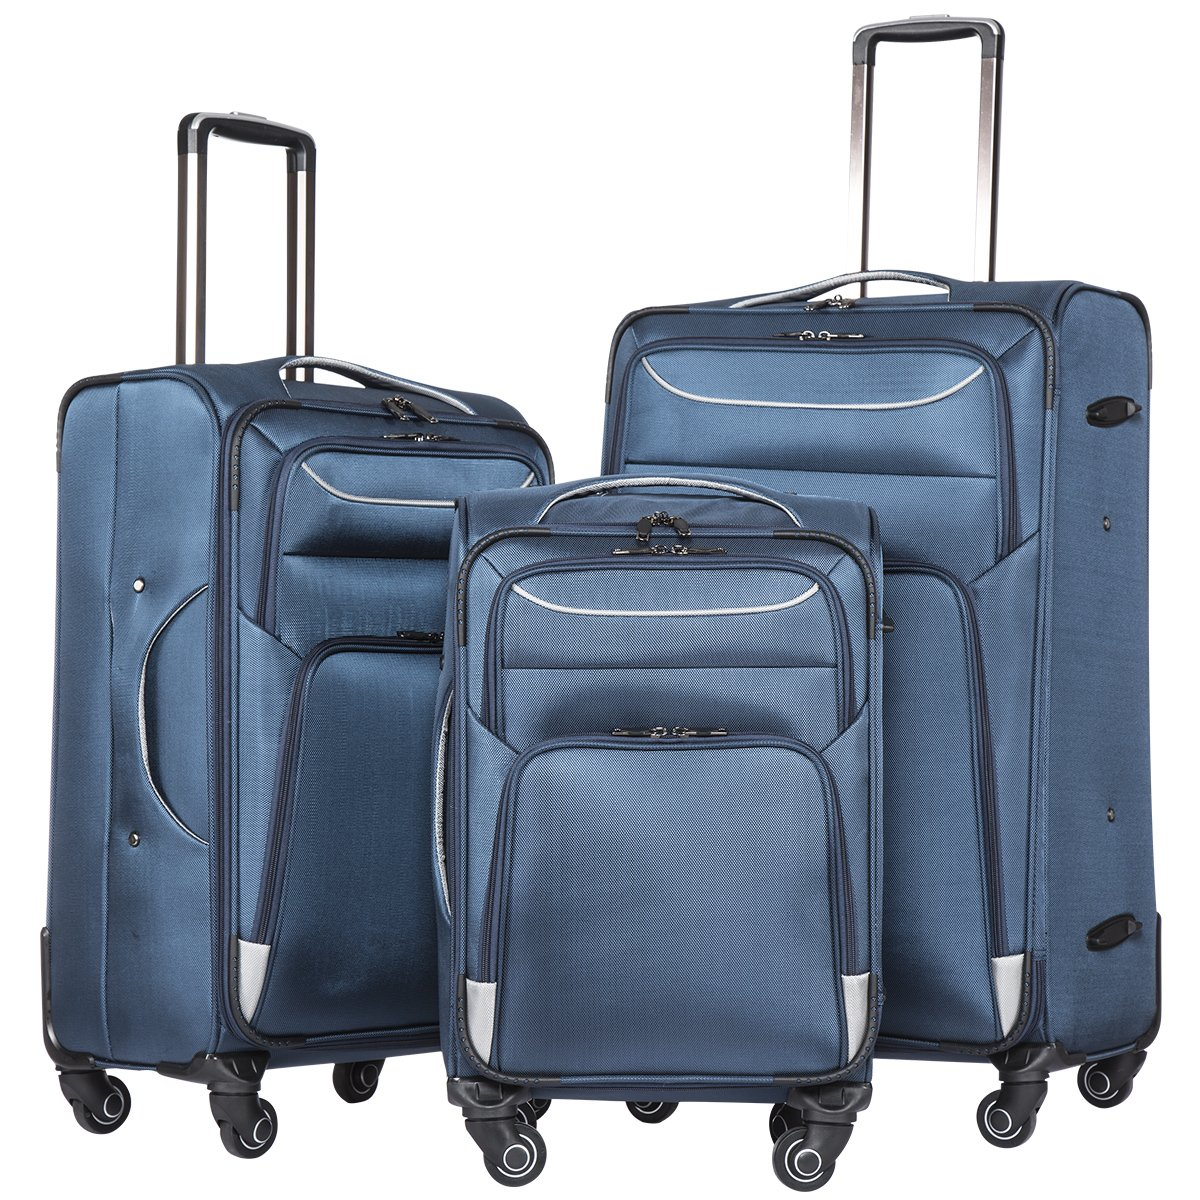 Coolife Luggage 3 Piece Set Suitcase Spinner Softshell lightweight (blue+sliver)